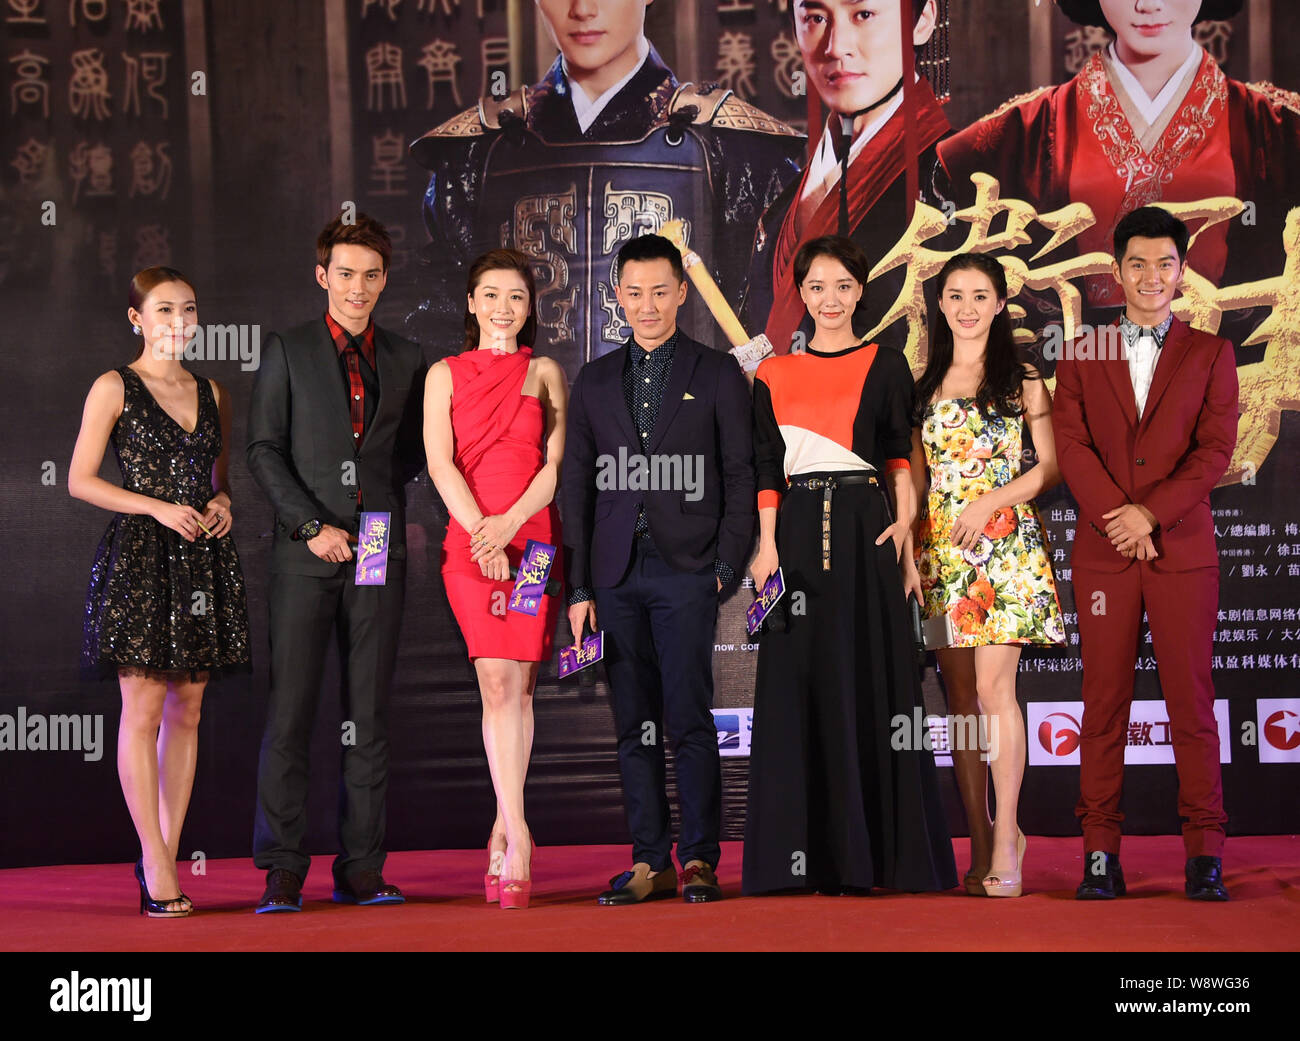 """The main cast members pose during a press conference for the premiere of their TV drama """"The Virtuous Queen of Han"""" in Beijing, China, 12 August 2014. Stock Photo"""